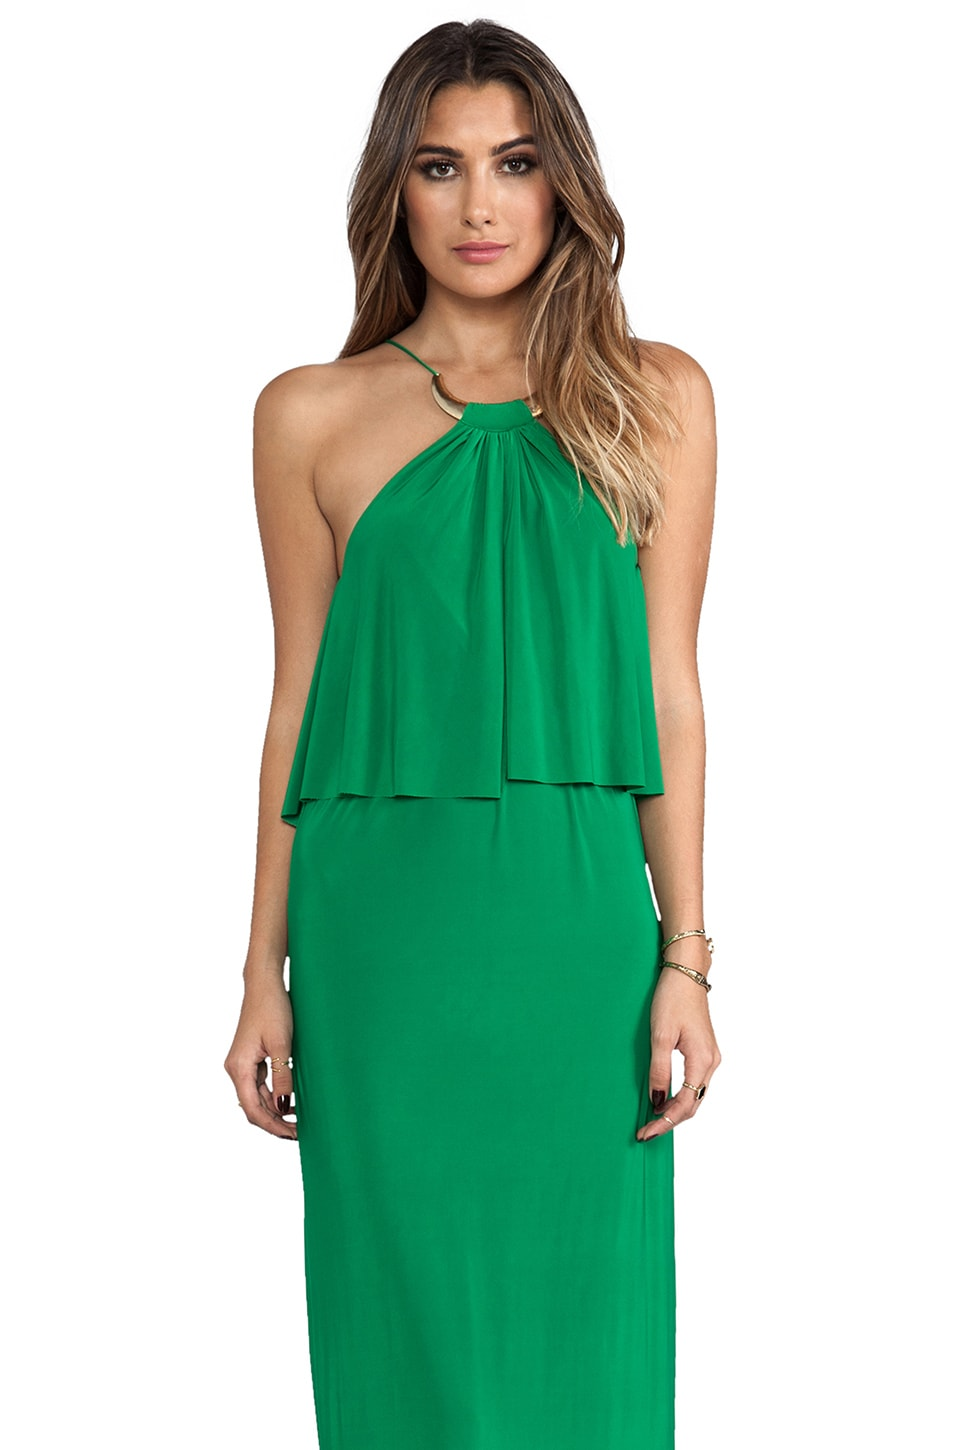 T-Bags LosAngeles Necklace Maxi Dress in Green